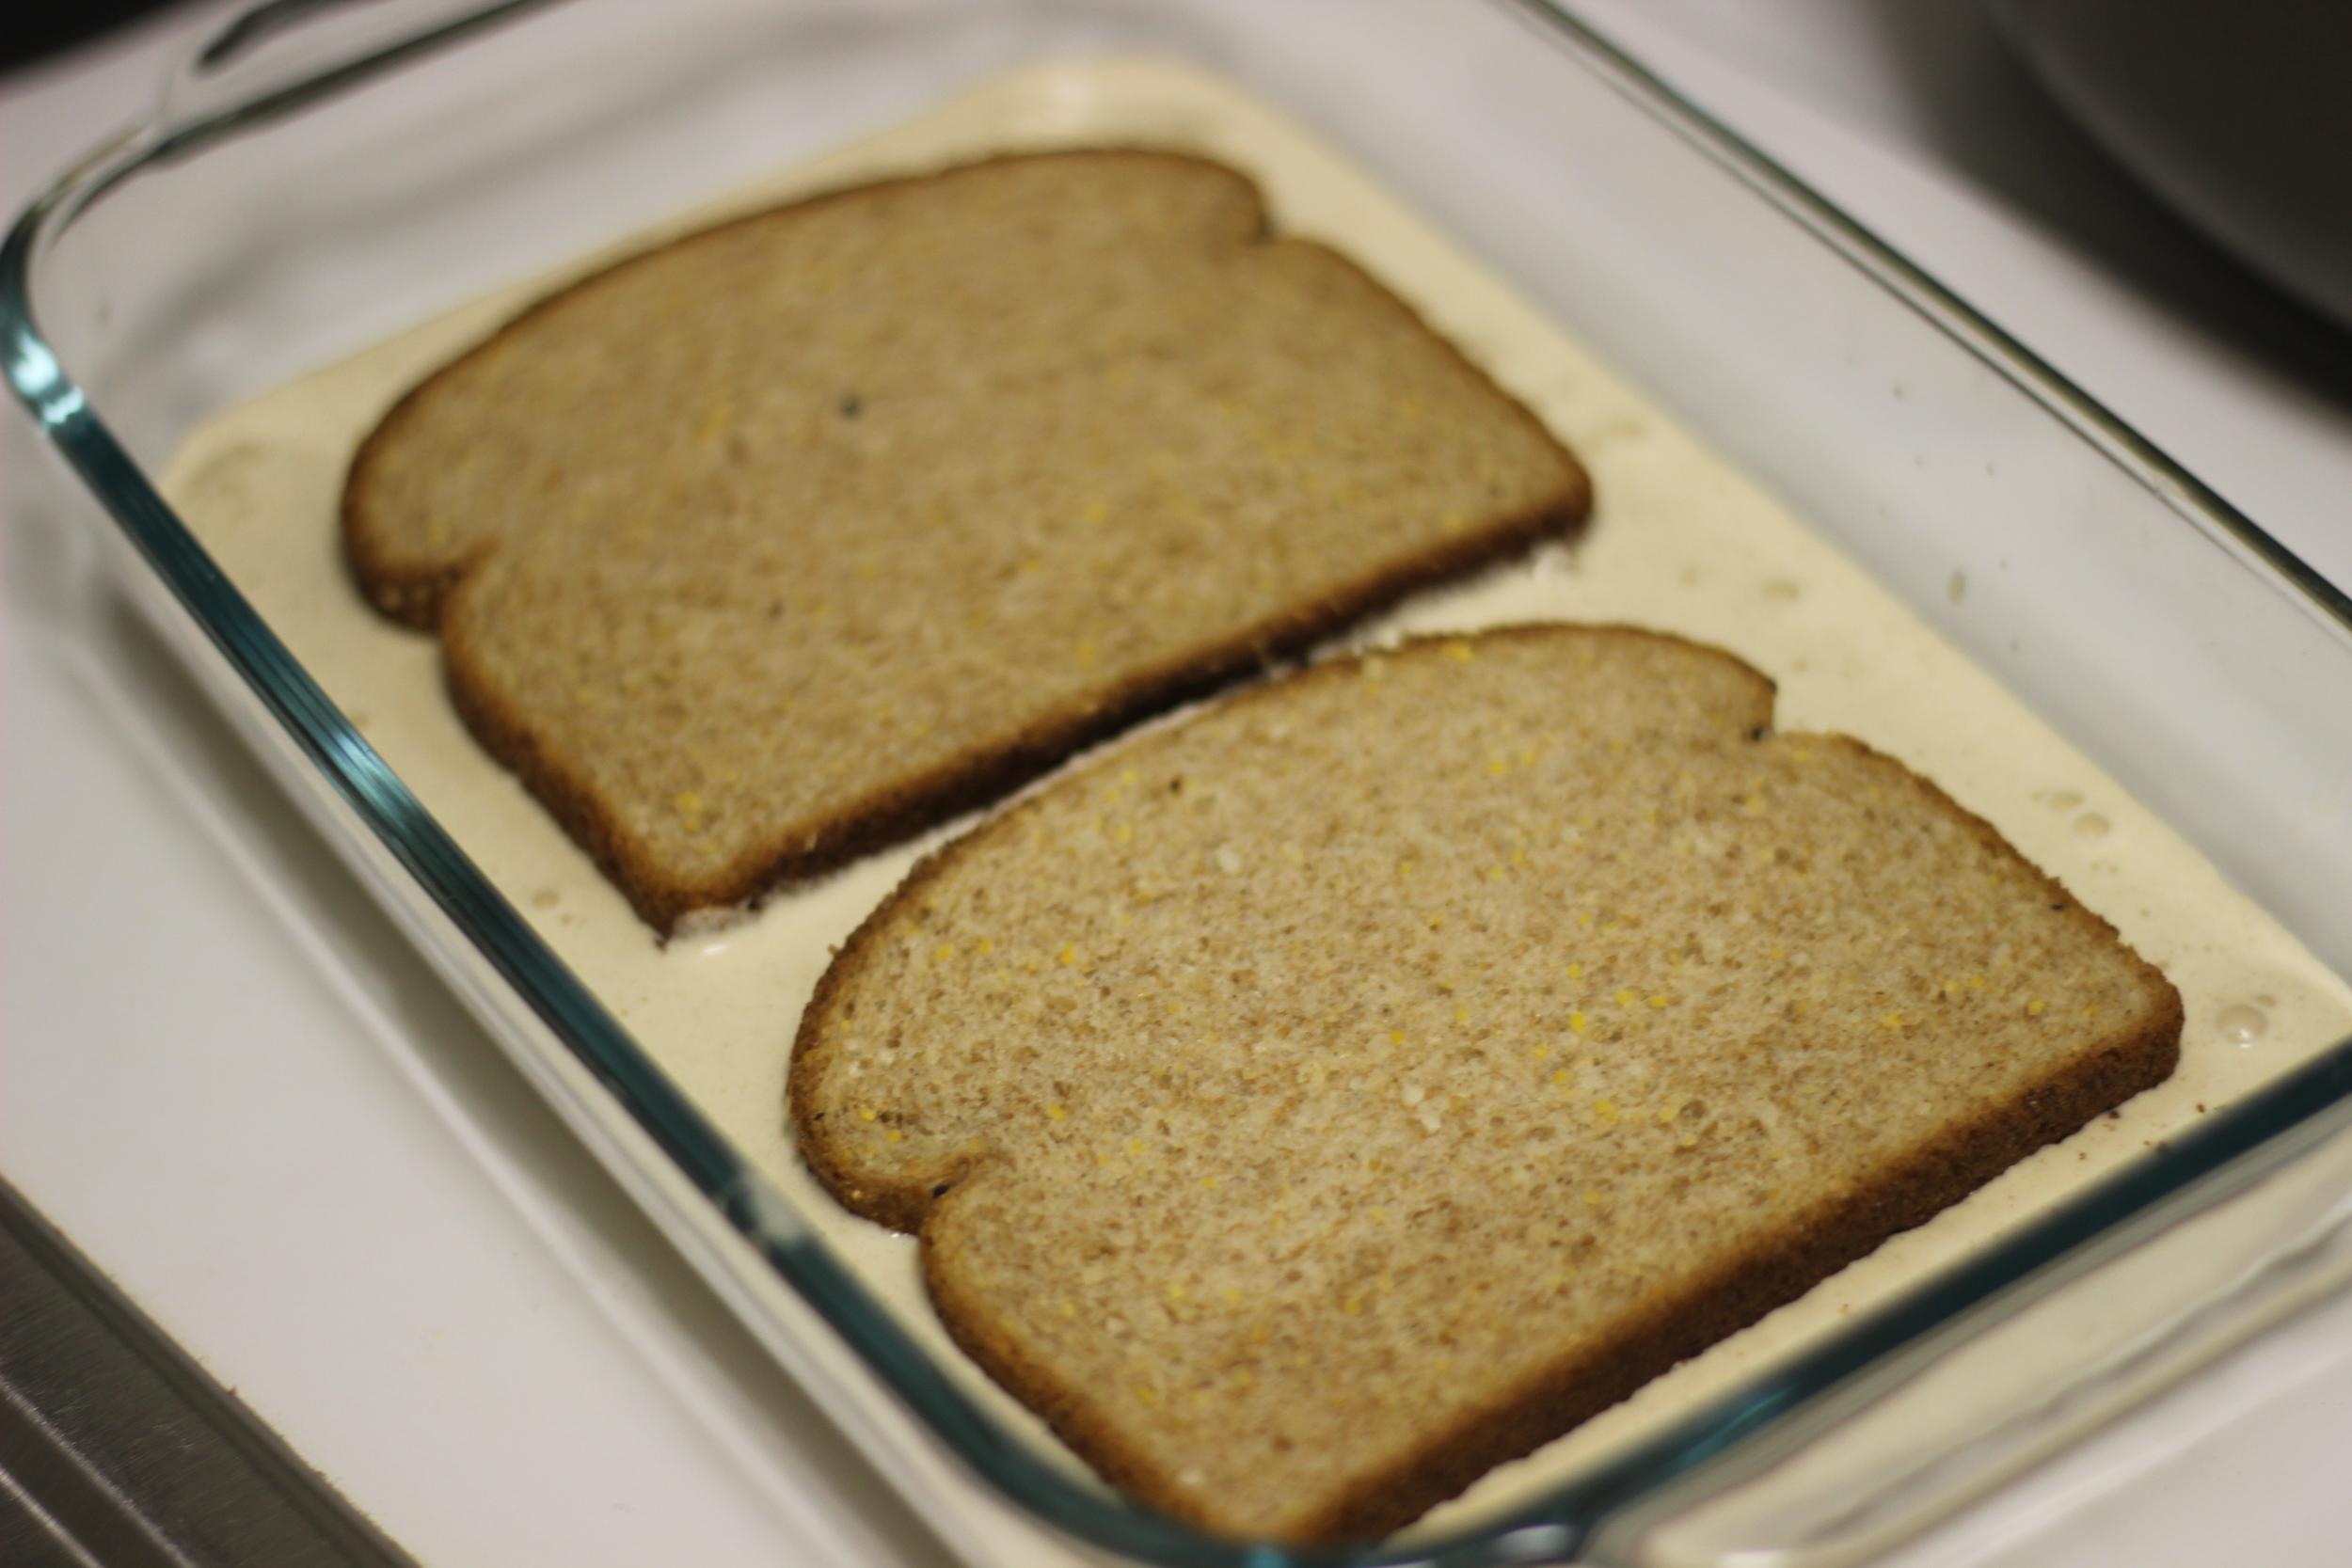 The bread slices need to soak up that deliciousness!